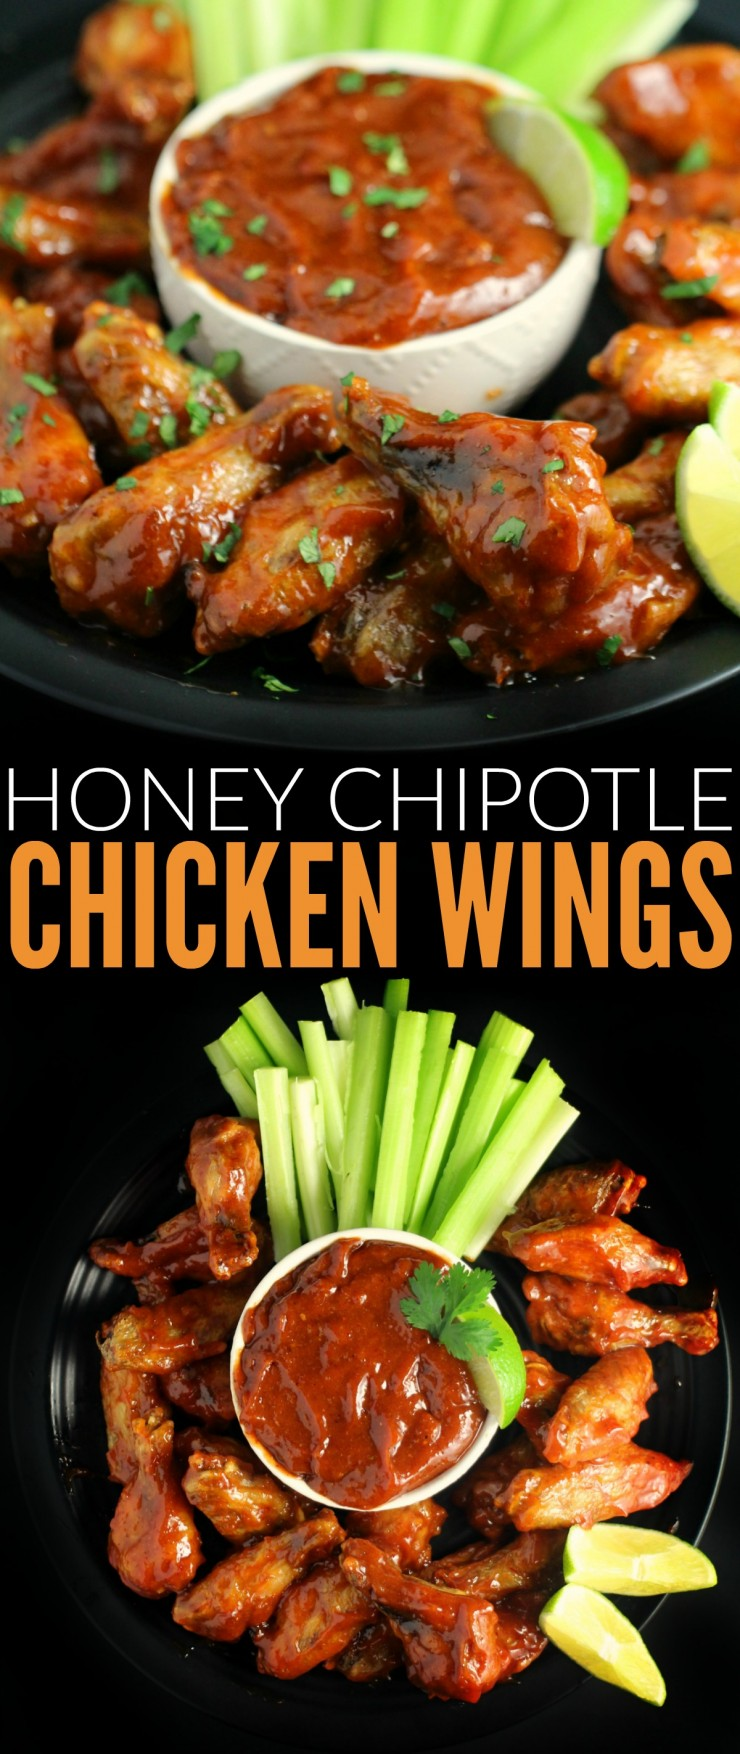 These Honey Chipotle Chicken Wings are a little bit sweet with a touch of sweet. They are guaranteed to fly off plate at any party you serve this delicious appetizer at.